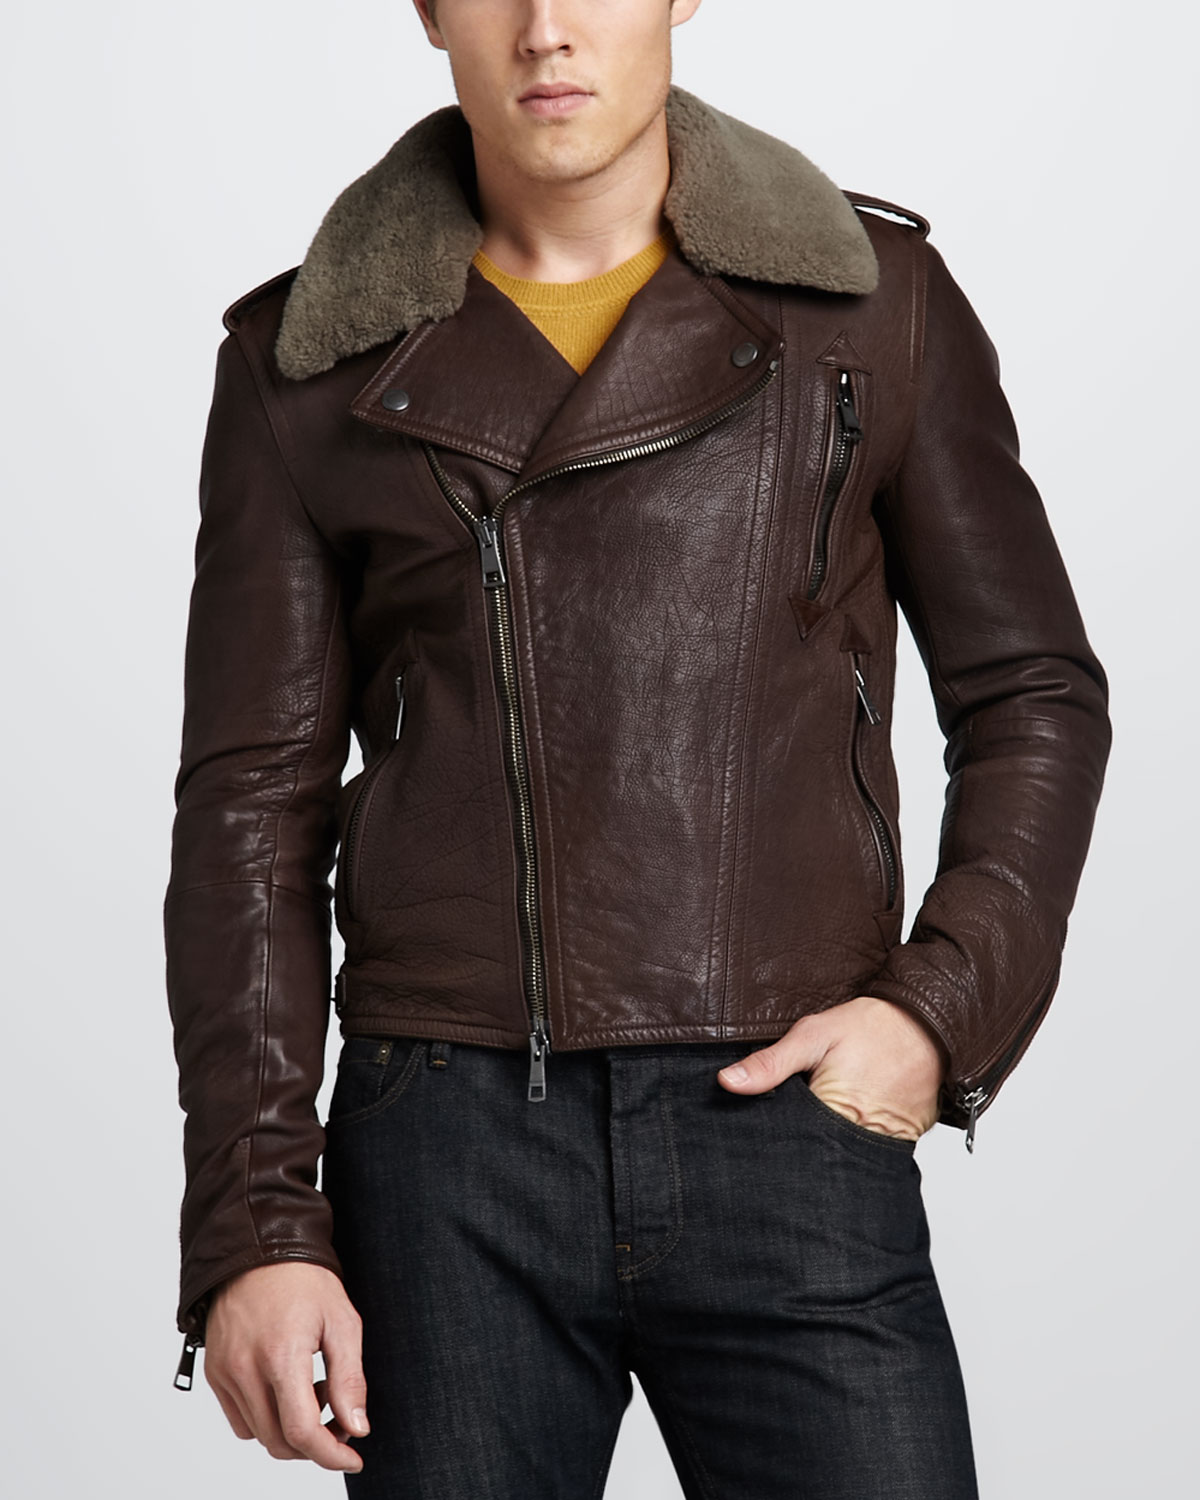 how to clean leather jacket collar